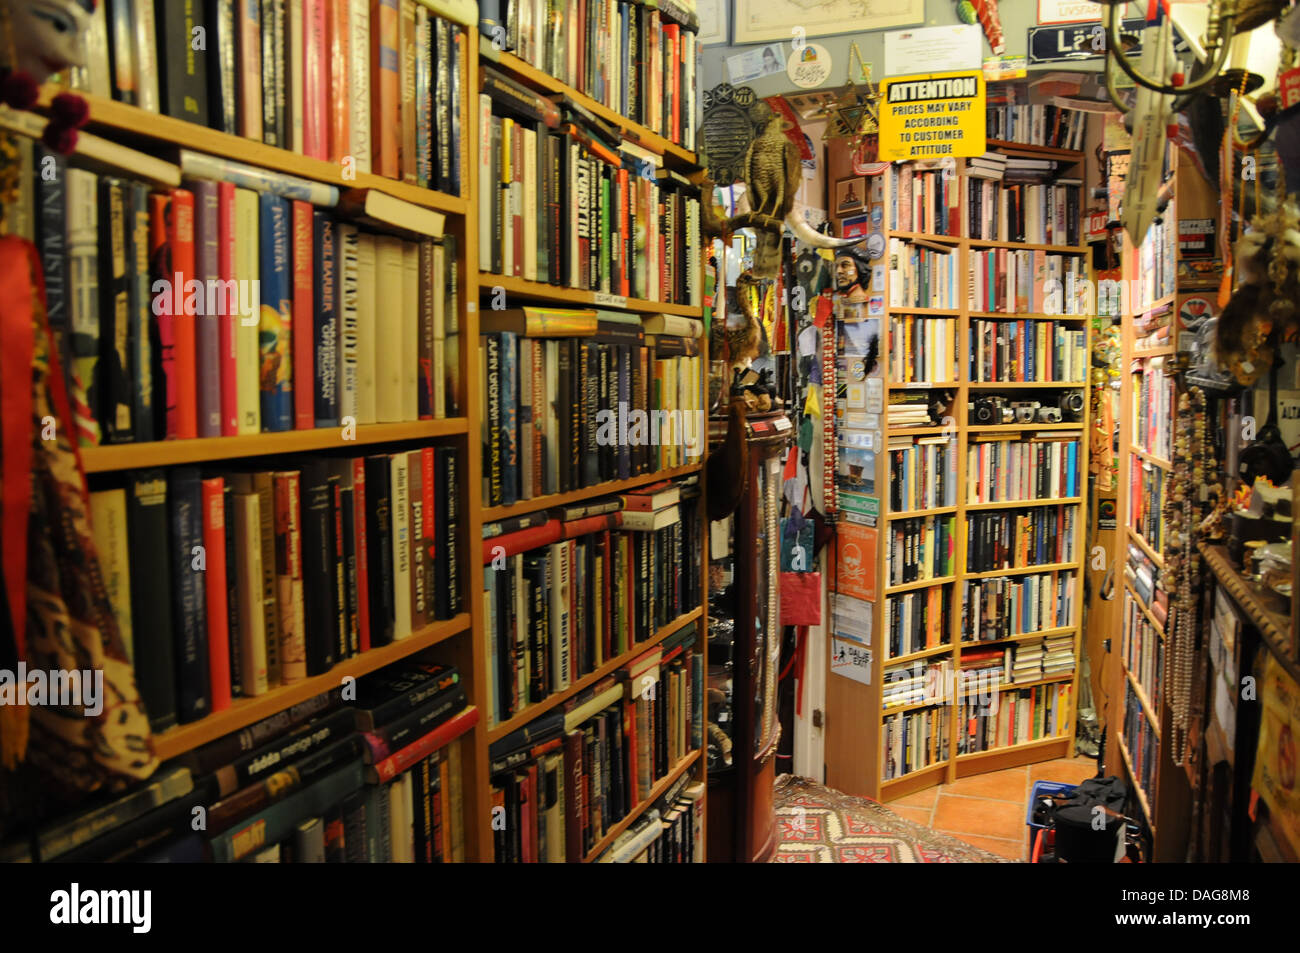 Shelves of old and used books at the World Report bookstore and memorabilia shop in Gothenburg, Sweden - Stock Image